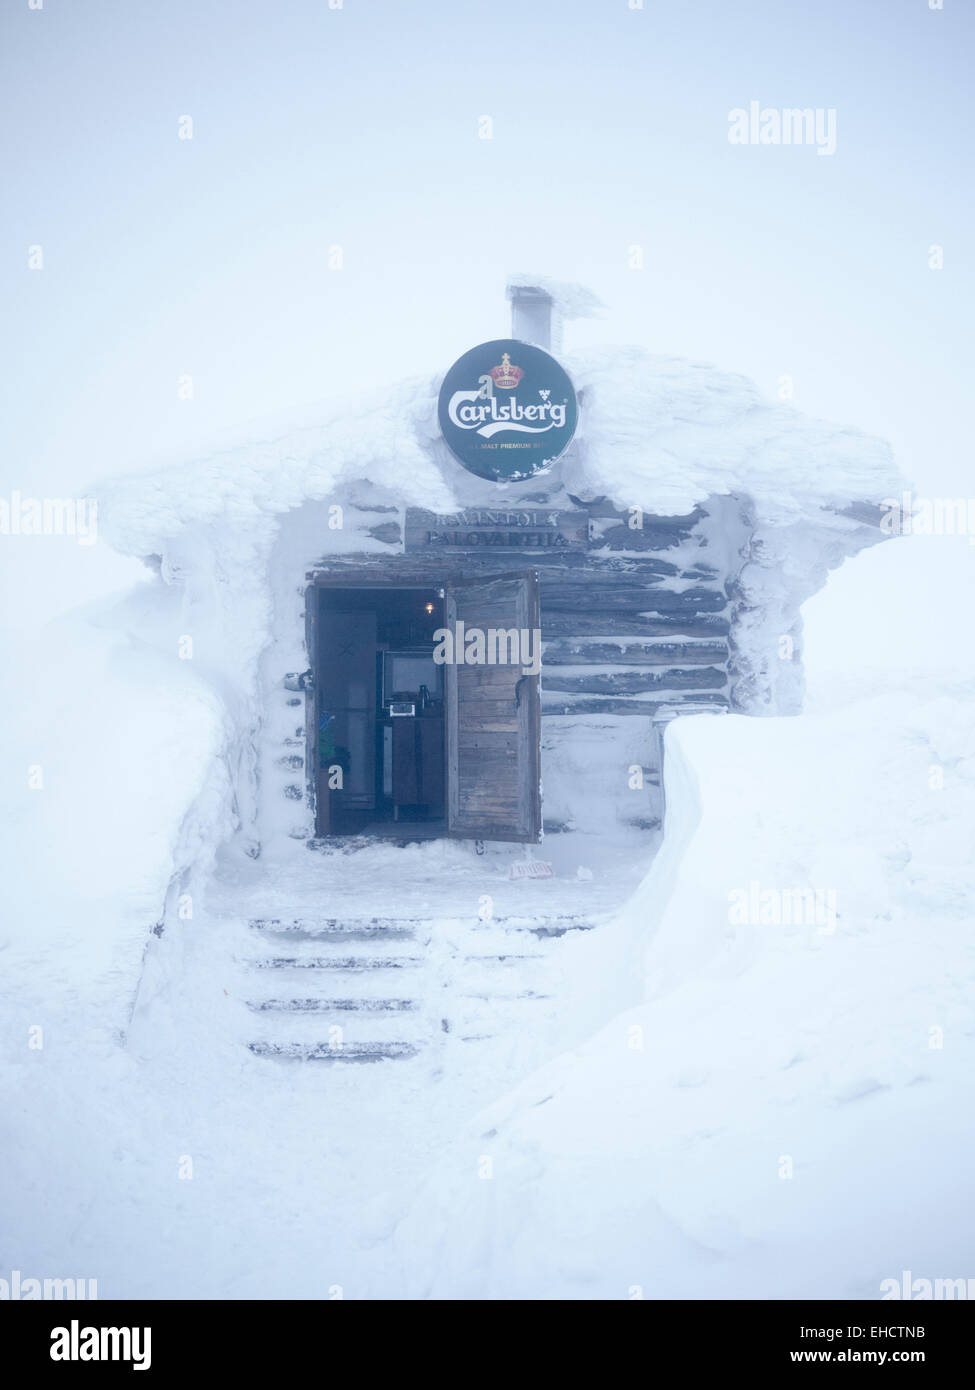 A small log cabin mountain restaurant on the piste at the ski resort of Levi, Lapland Finland with a Carlsberg sign - Stock Image